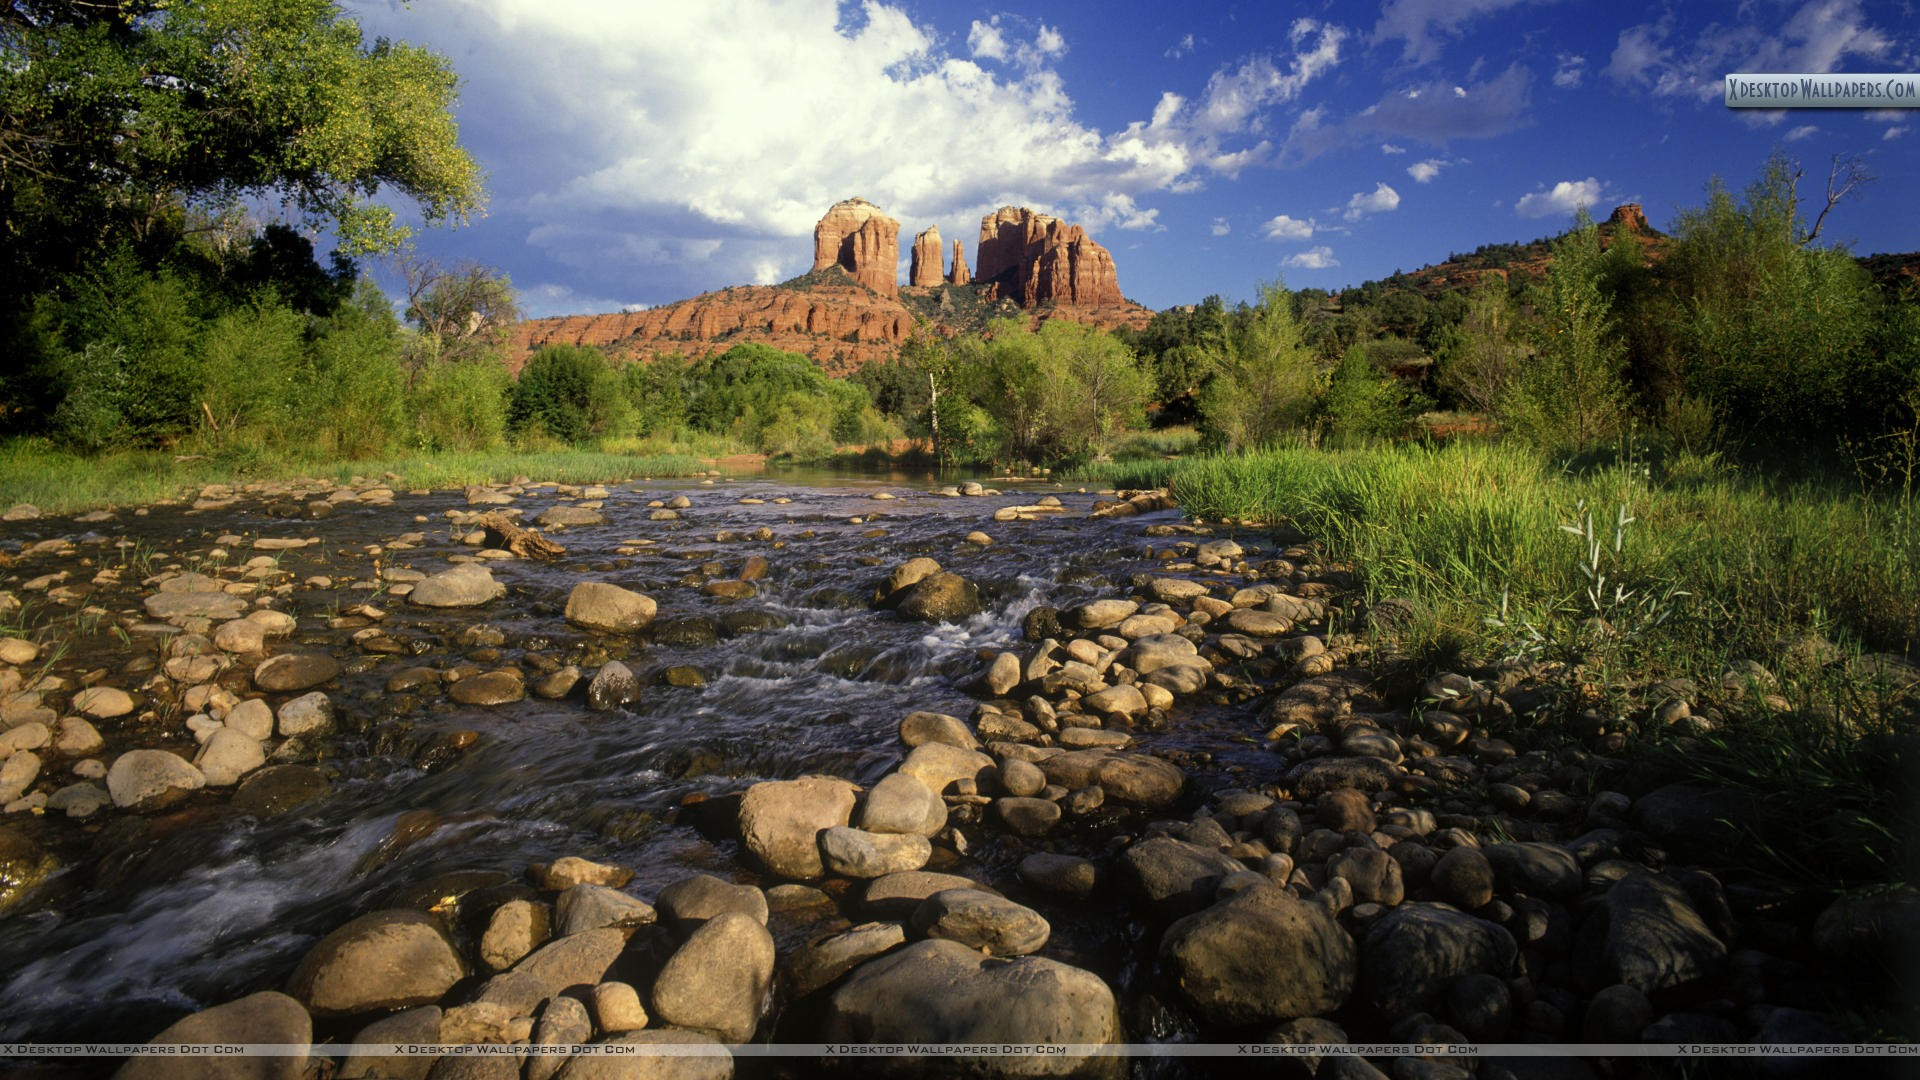 nature & landscape wallpapers, photos & images in hd